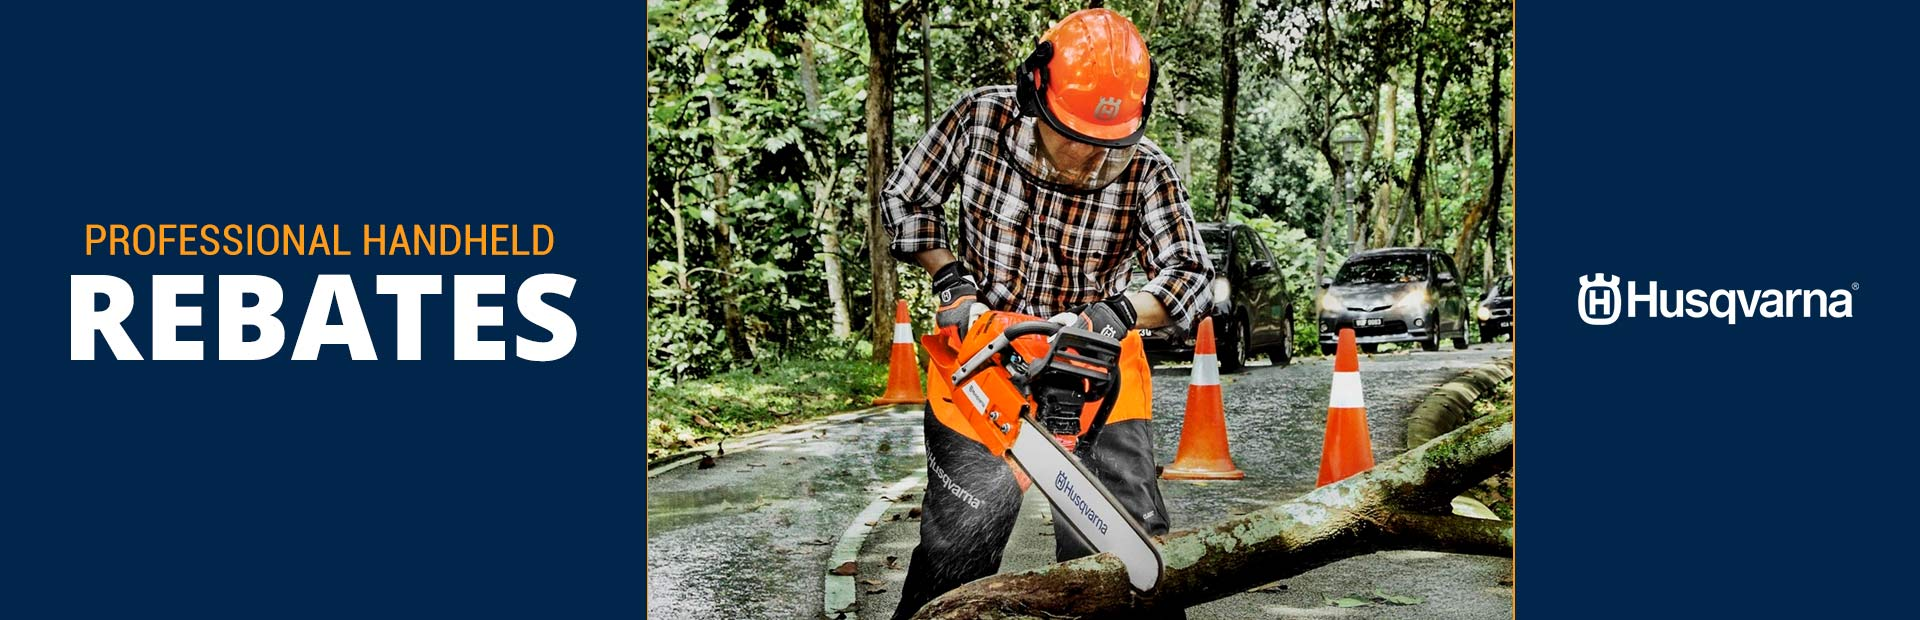 Husqvarna: Professional Handheld Rebates